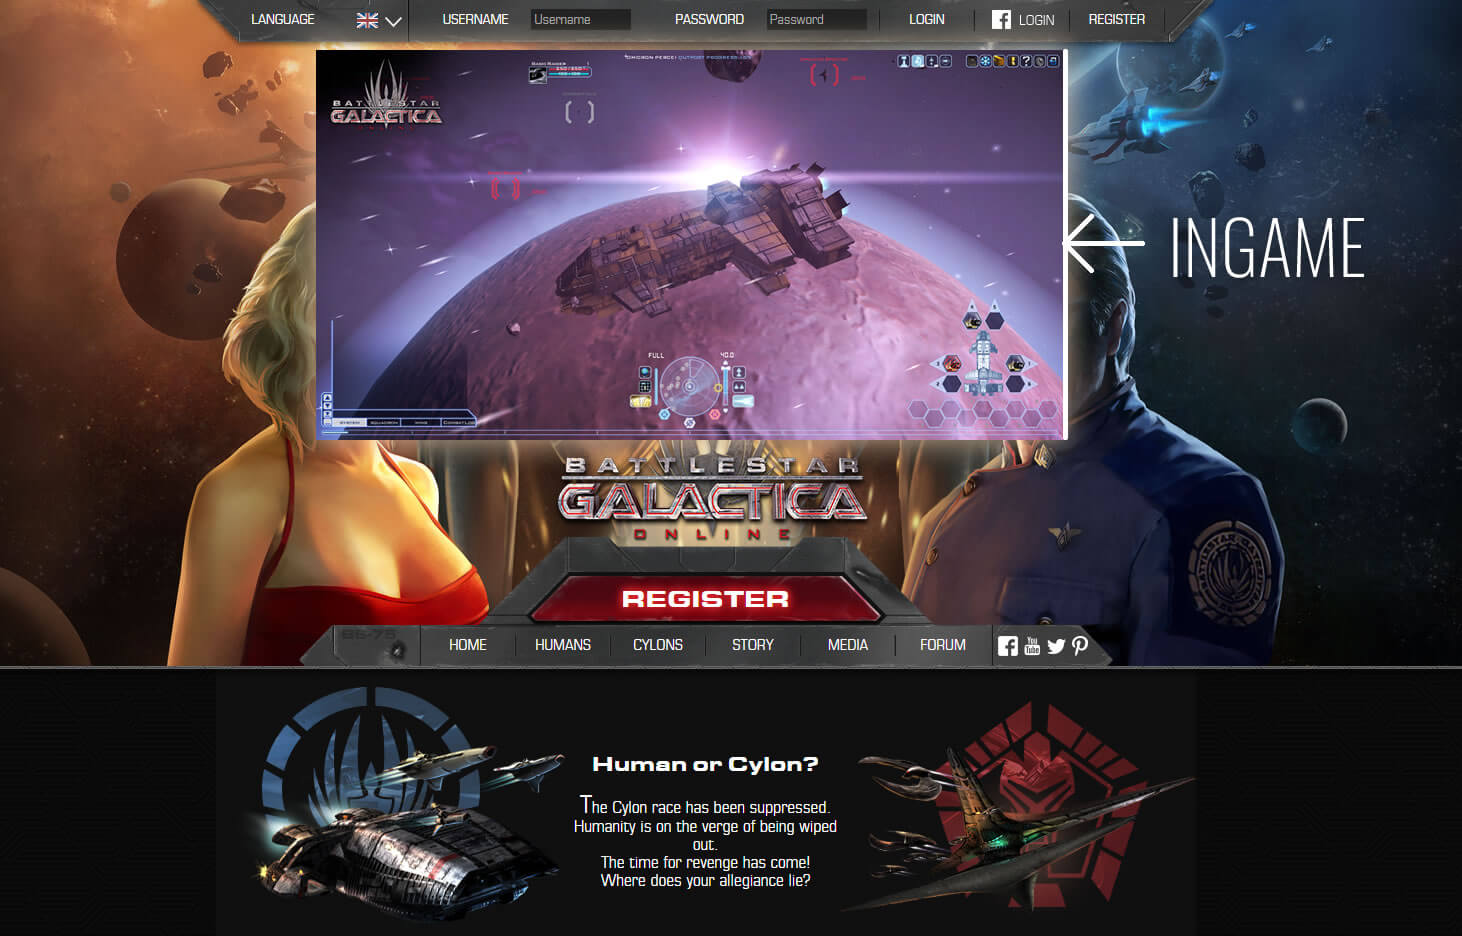 battlestar-galactica-online-space-shooter-mmo